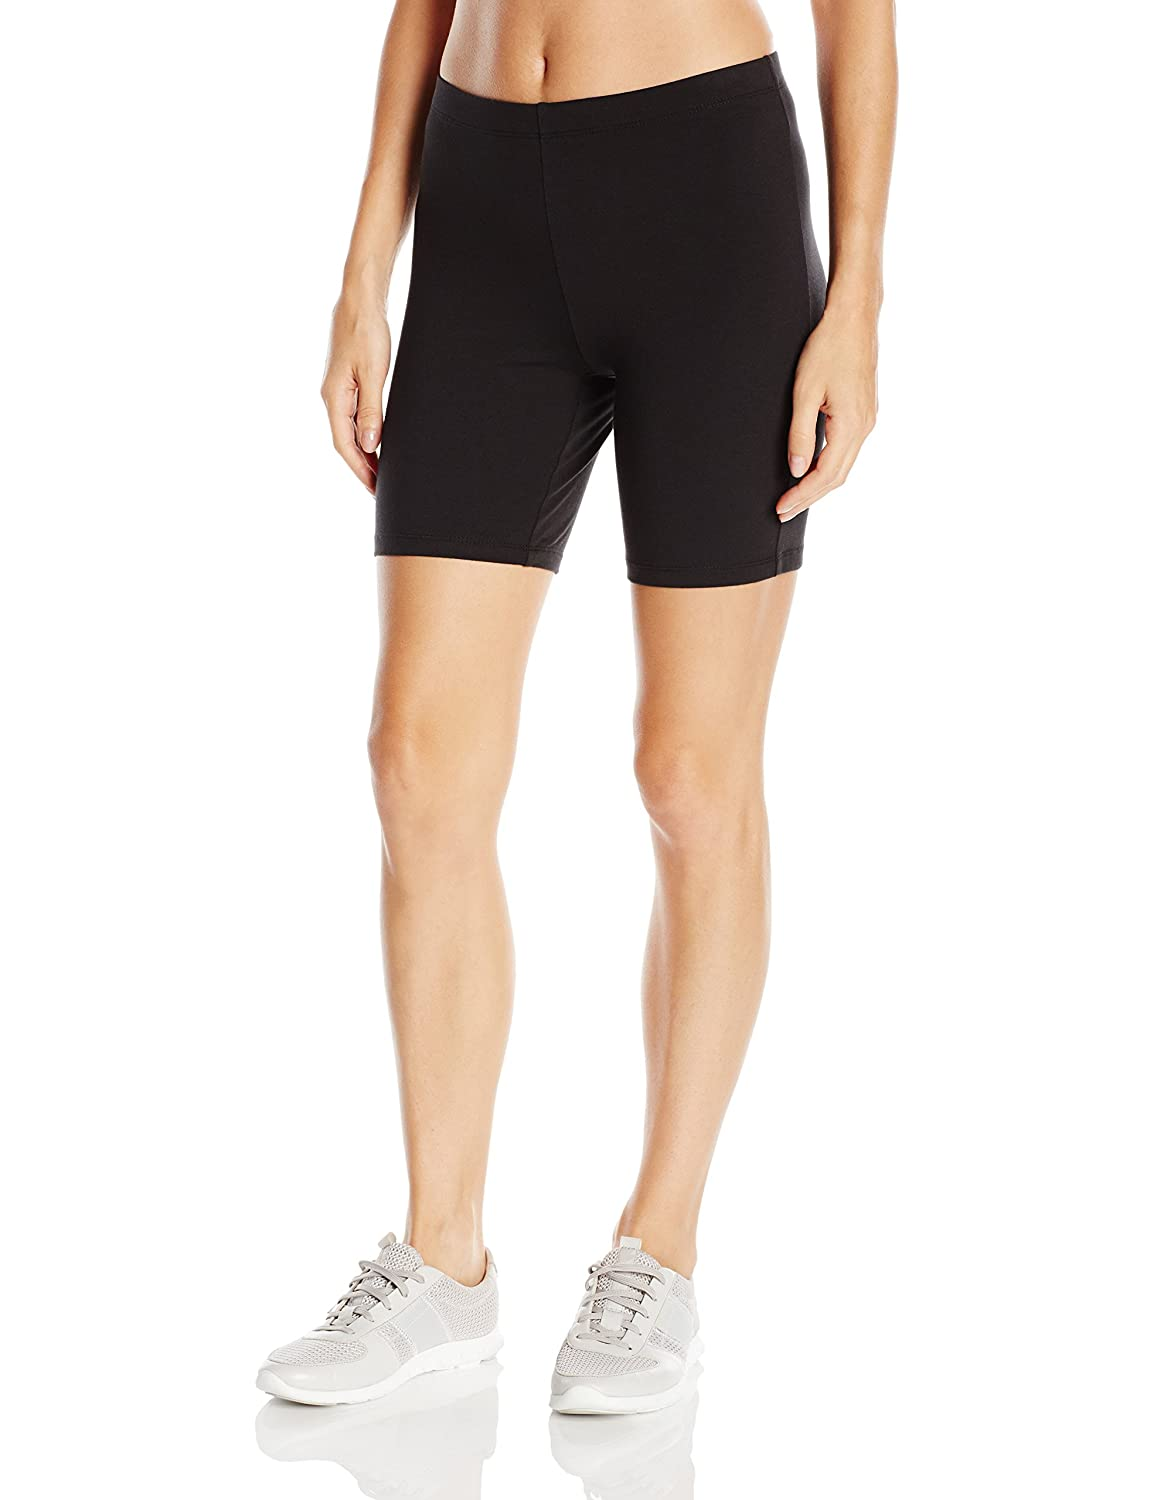 Hanes Womens Stretch Jersey Bike Short Hanes Women' s Activewear O9291